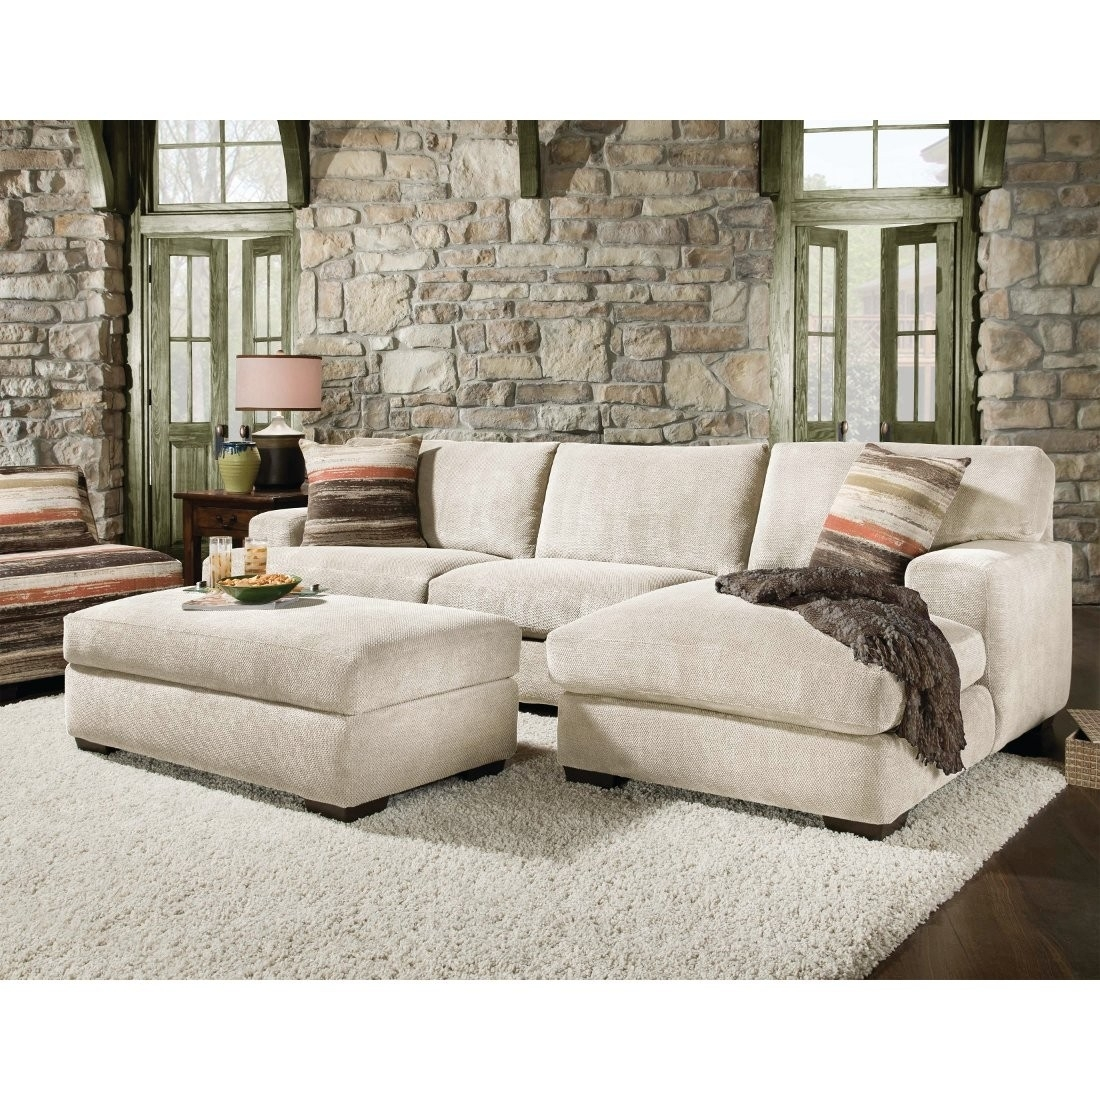 Beautiful Sectional Sofa With Chaise And Ottoman Pictures Throughout Small Sectional Sofas With Chaise And Ottoman (View 3 of 10)